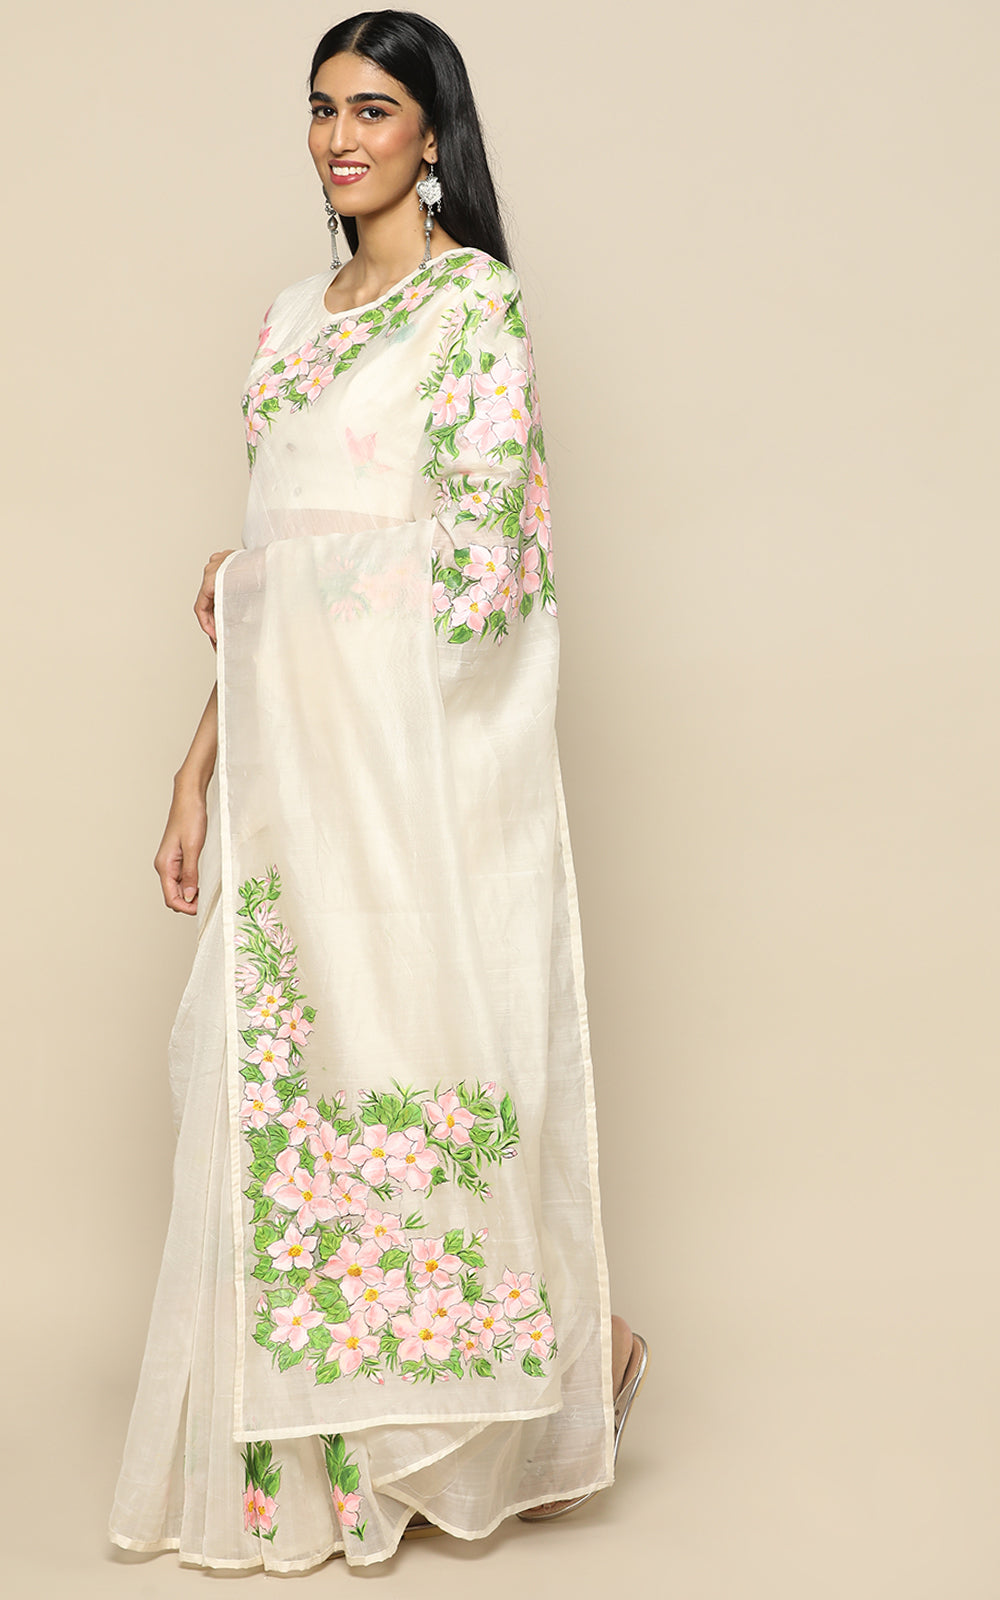 OFFWHITE CHANDERI SILK SAREE WITH PINK PASTEL HANDPAINTED FLOWERS